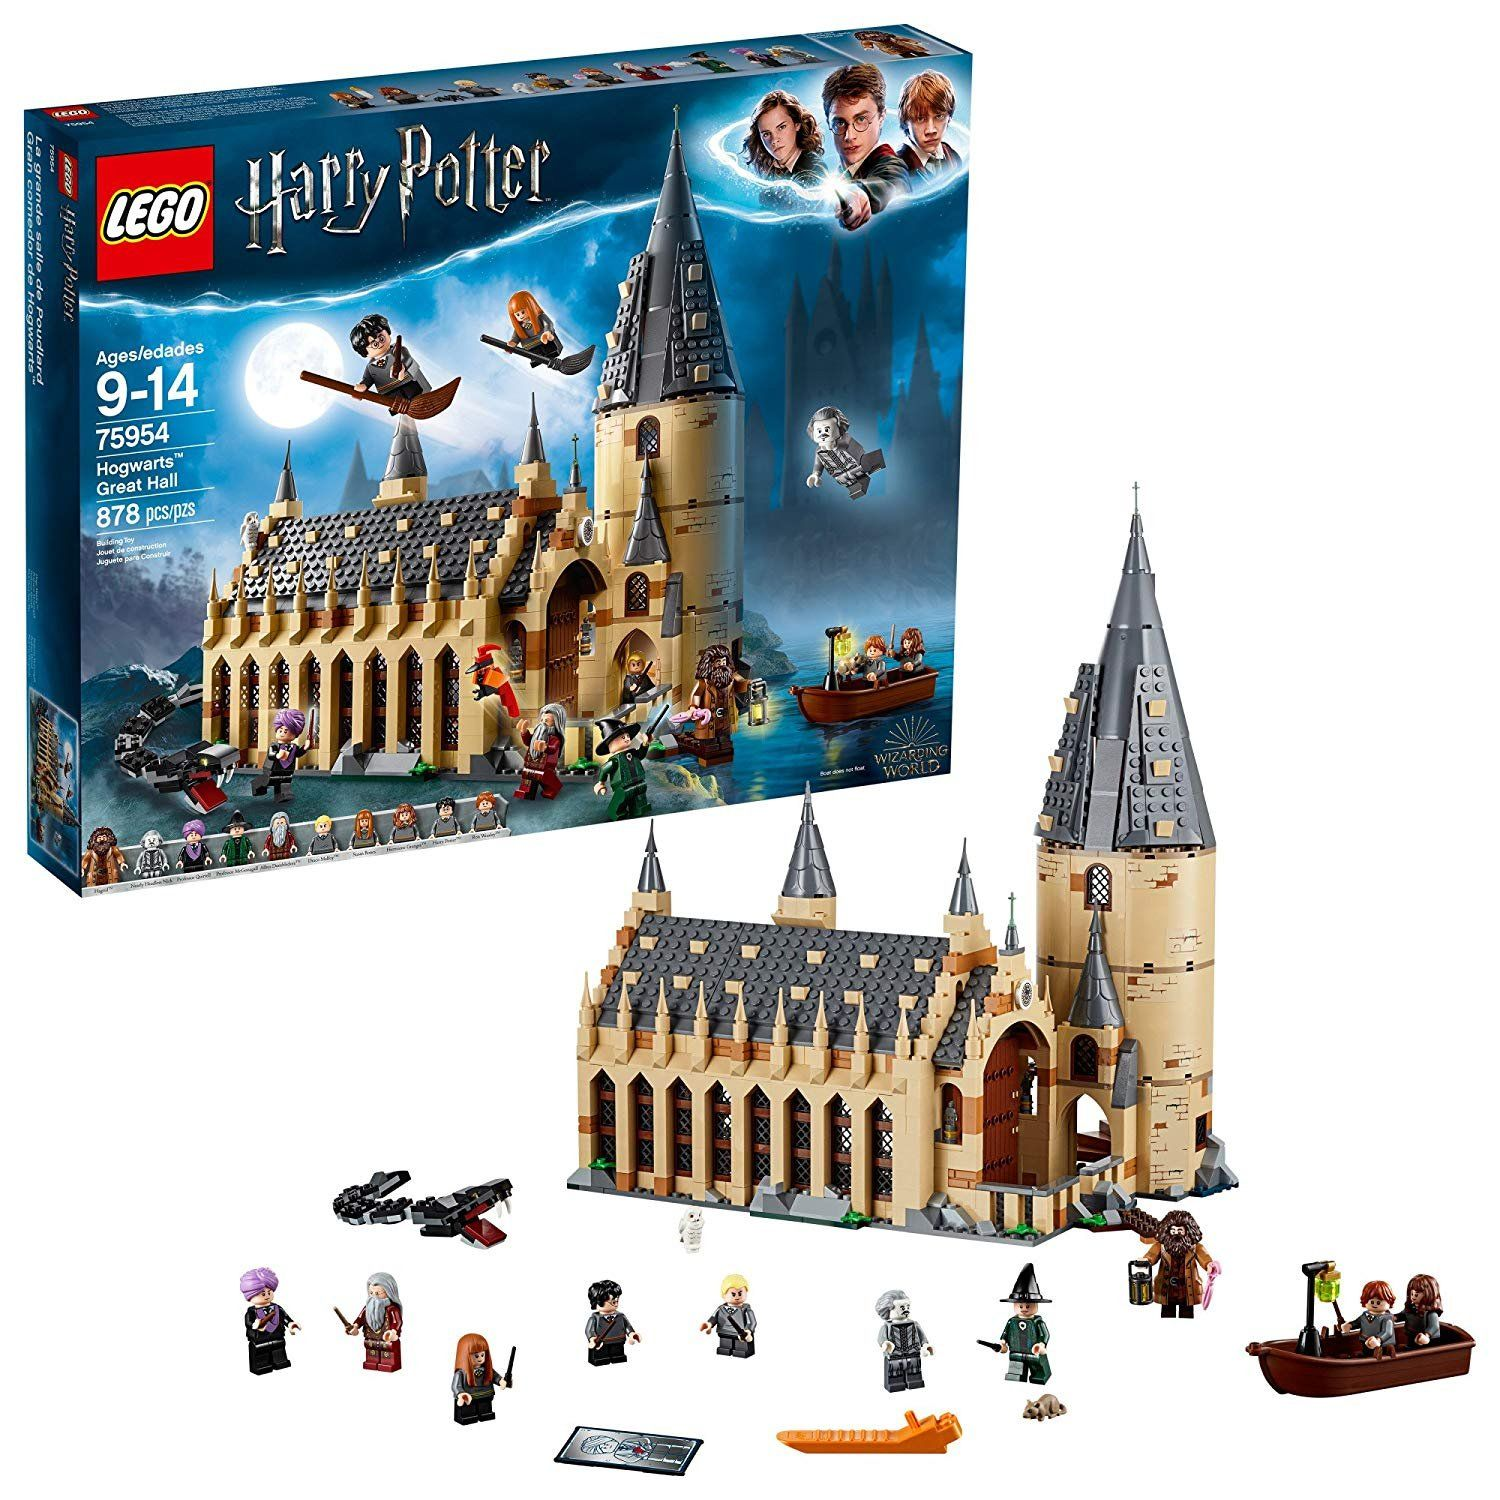 Harry Potter Hogwarts Great Hall Building Kit 2018 hot holiday kids toys